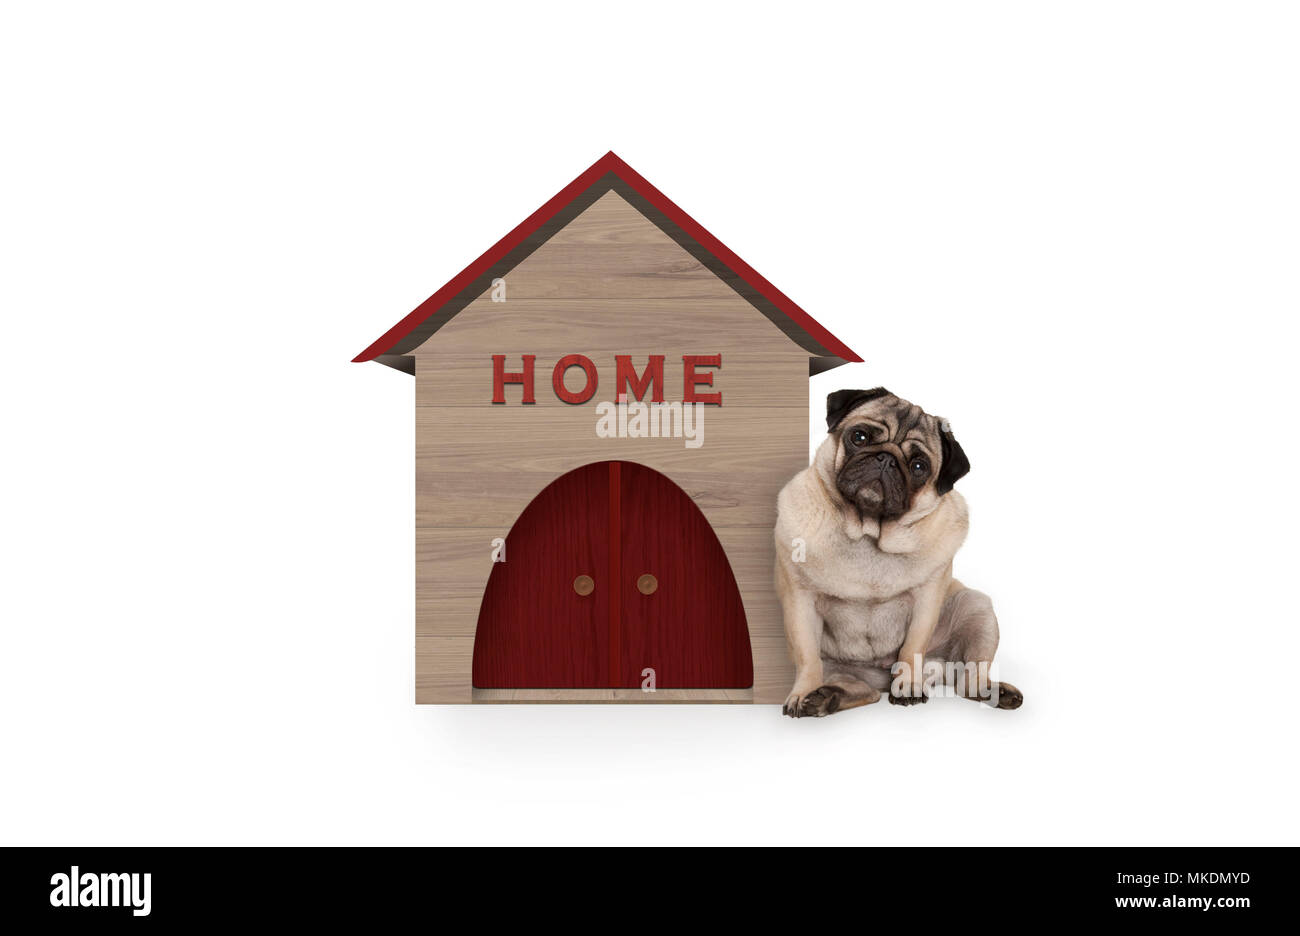 cheeky pug puppy dog sitting down next to dog house with sign Home, isolated on white background Stock Photo